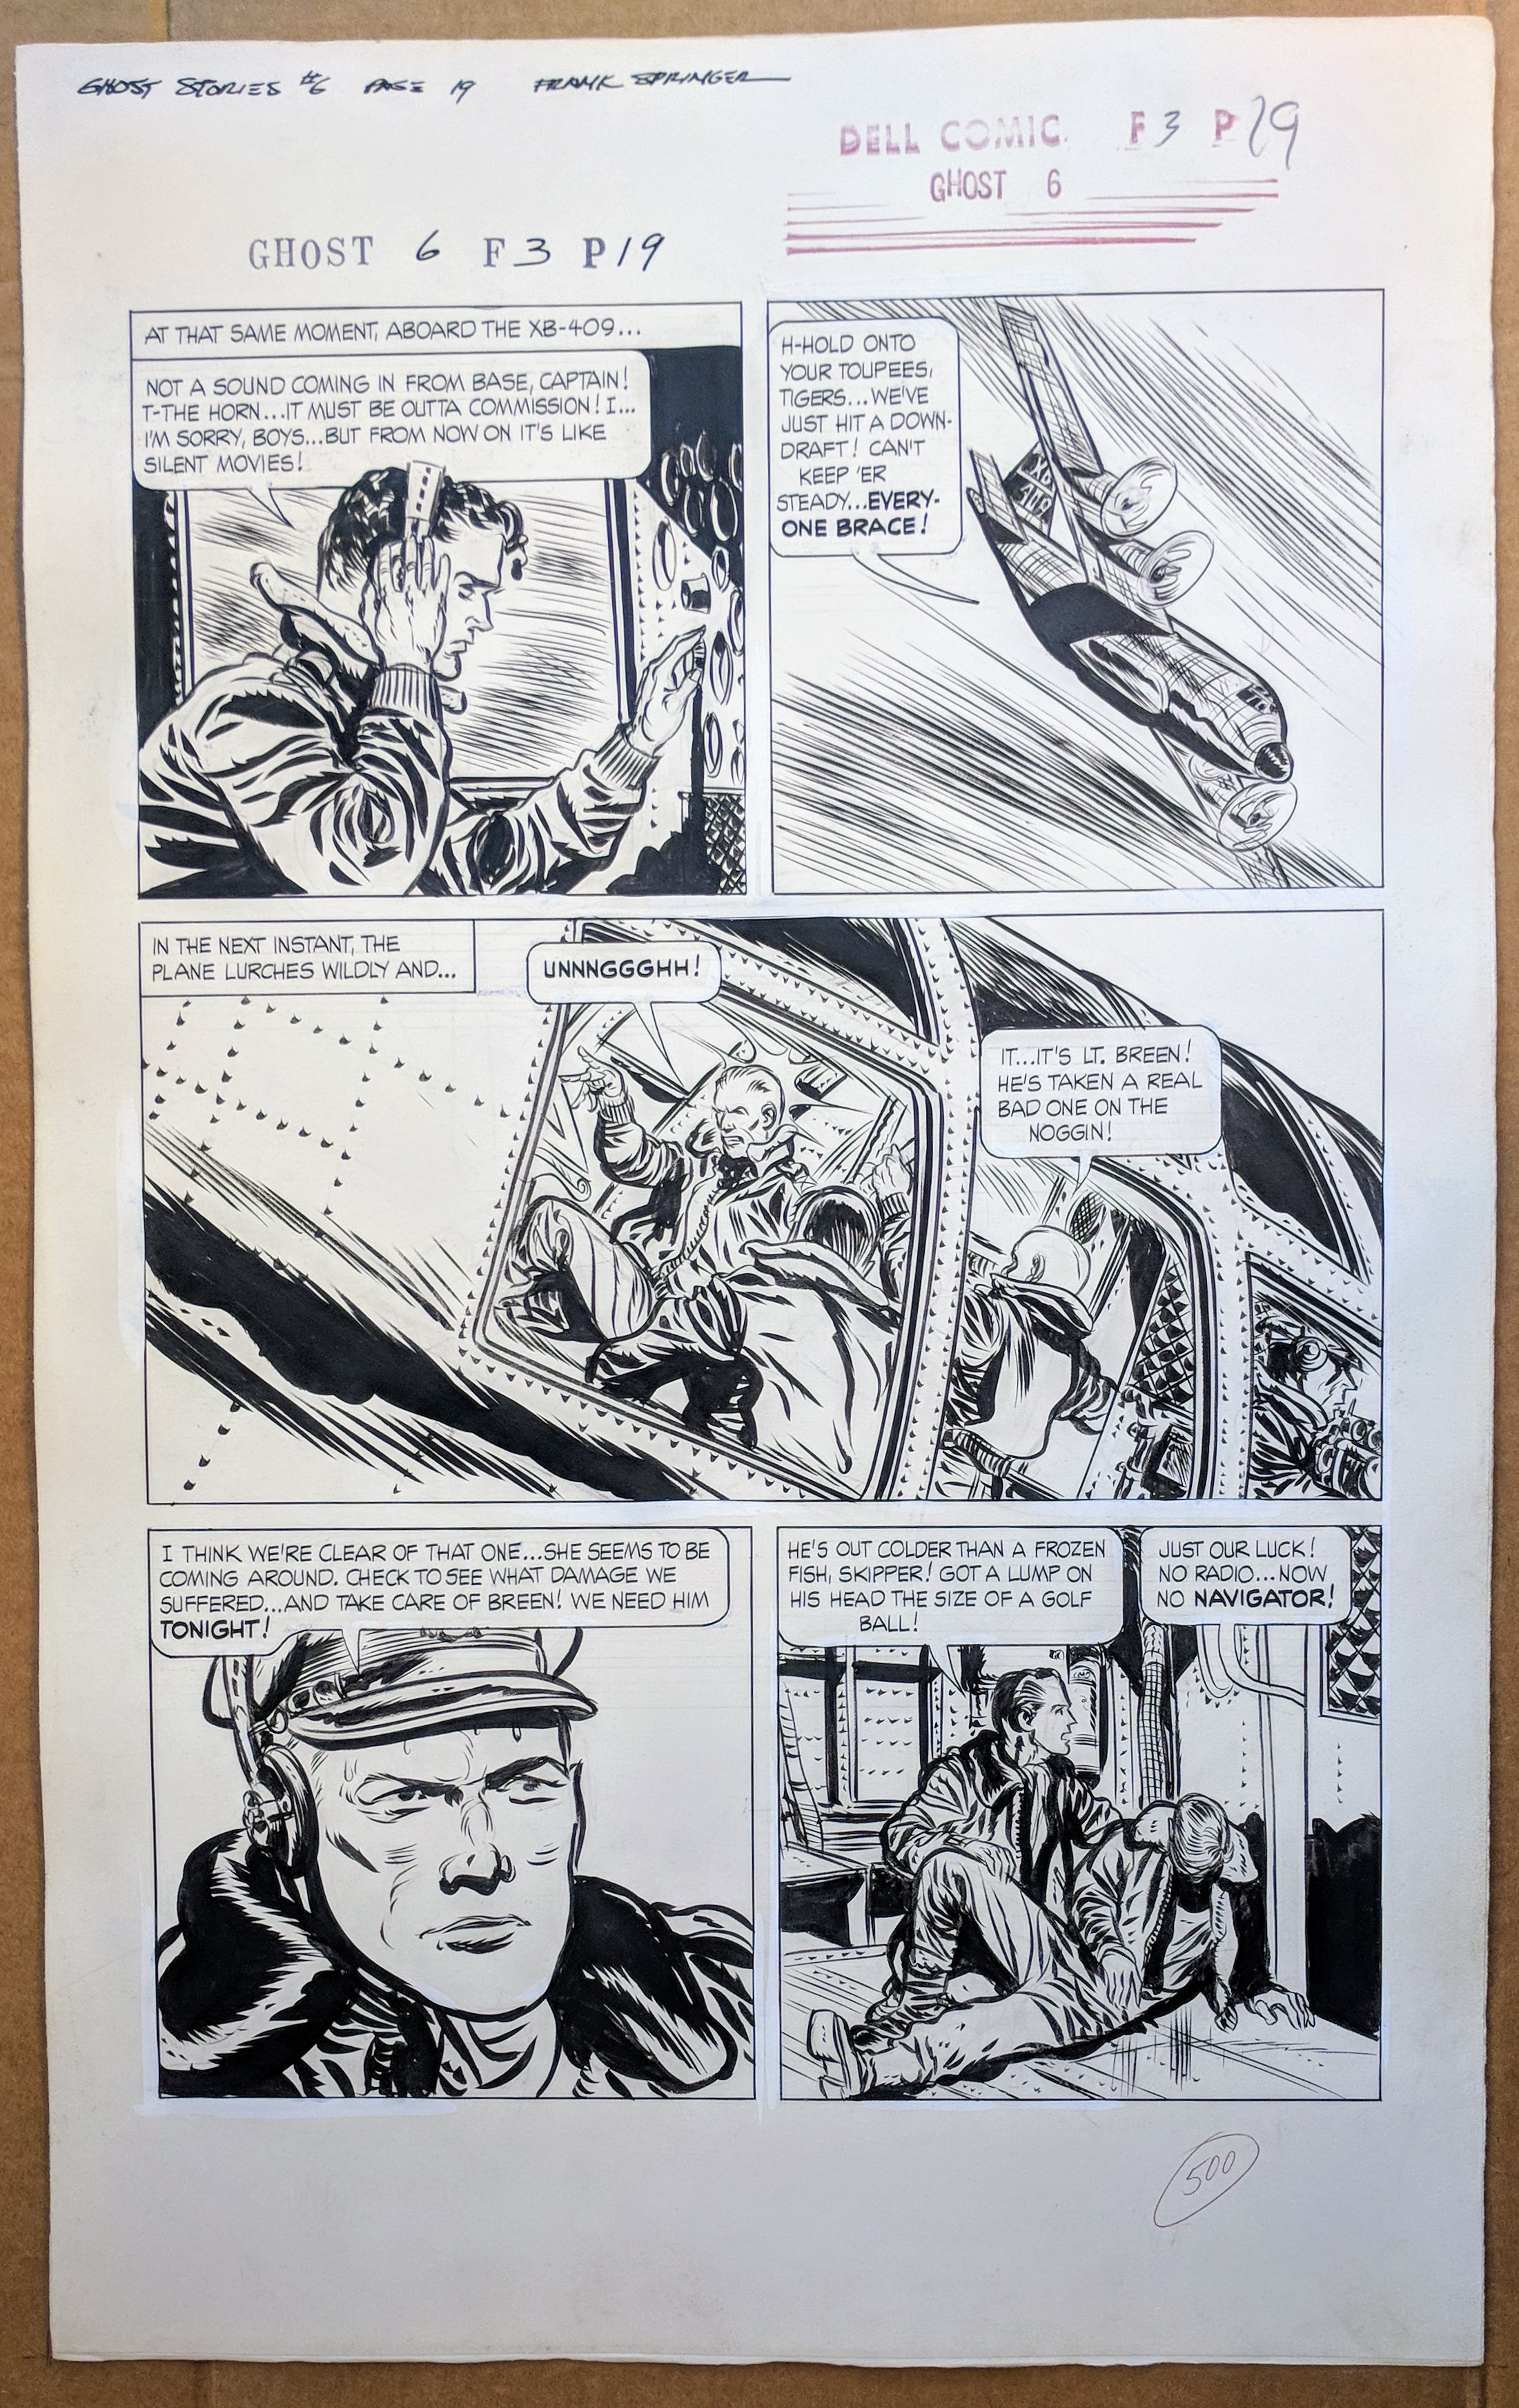 Ghost Stories #3 Frank Springer story 7 pages ends 10/4 near